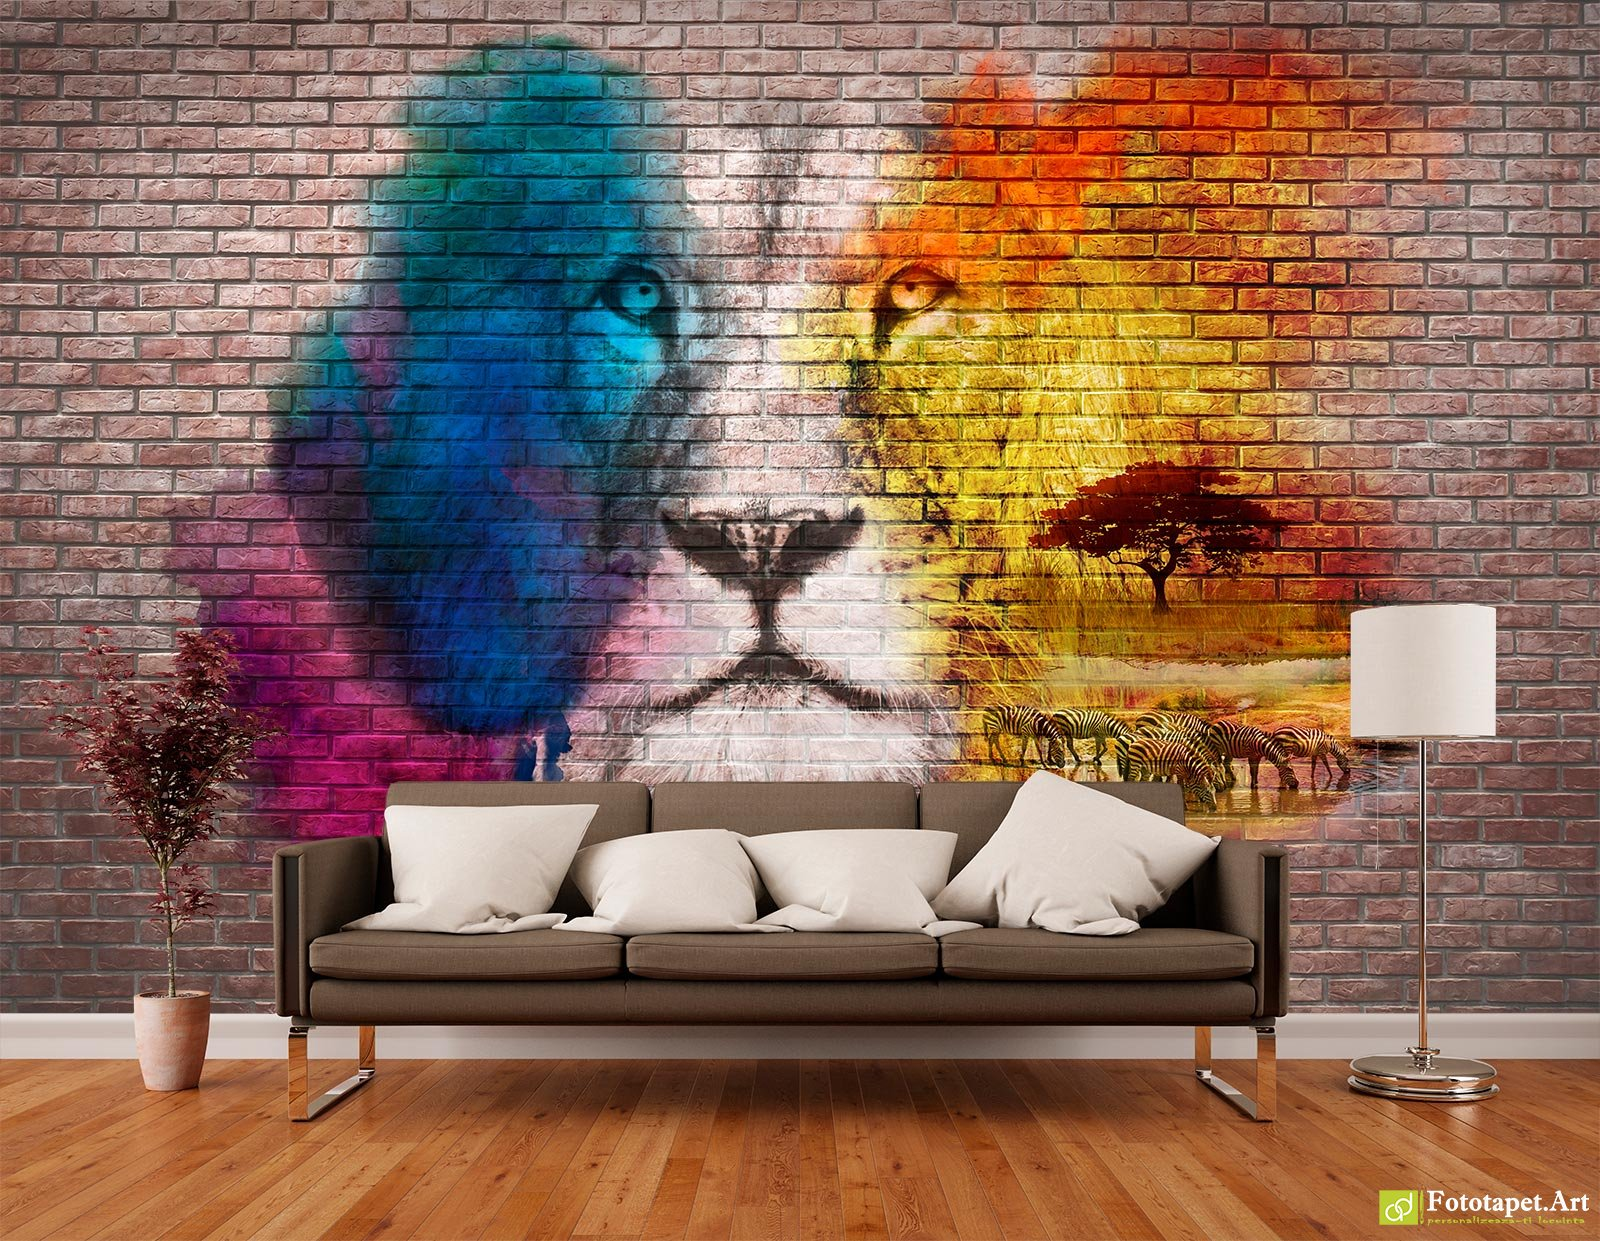 Wall murals digital wallpaper face of savannah on brick background